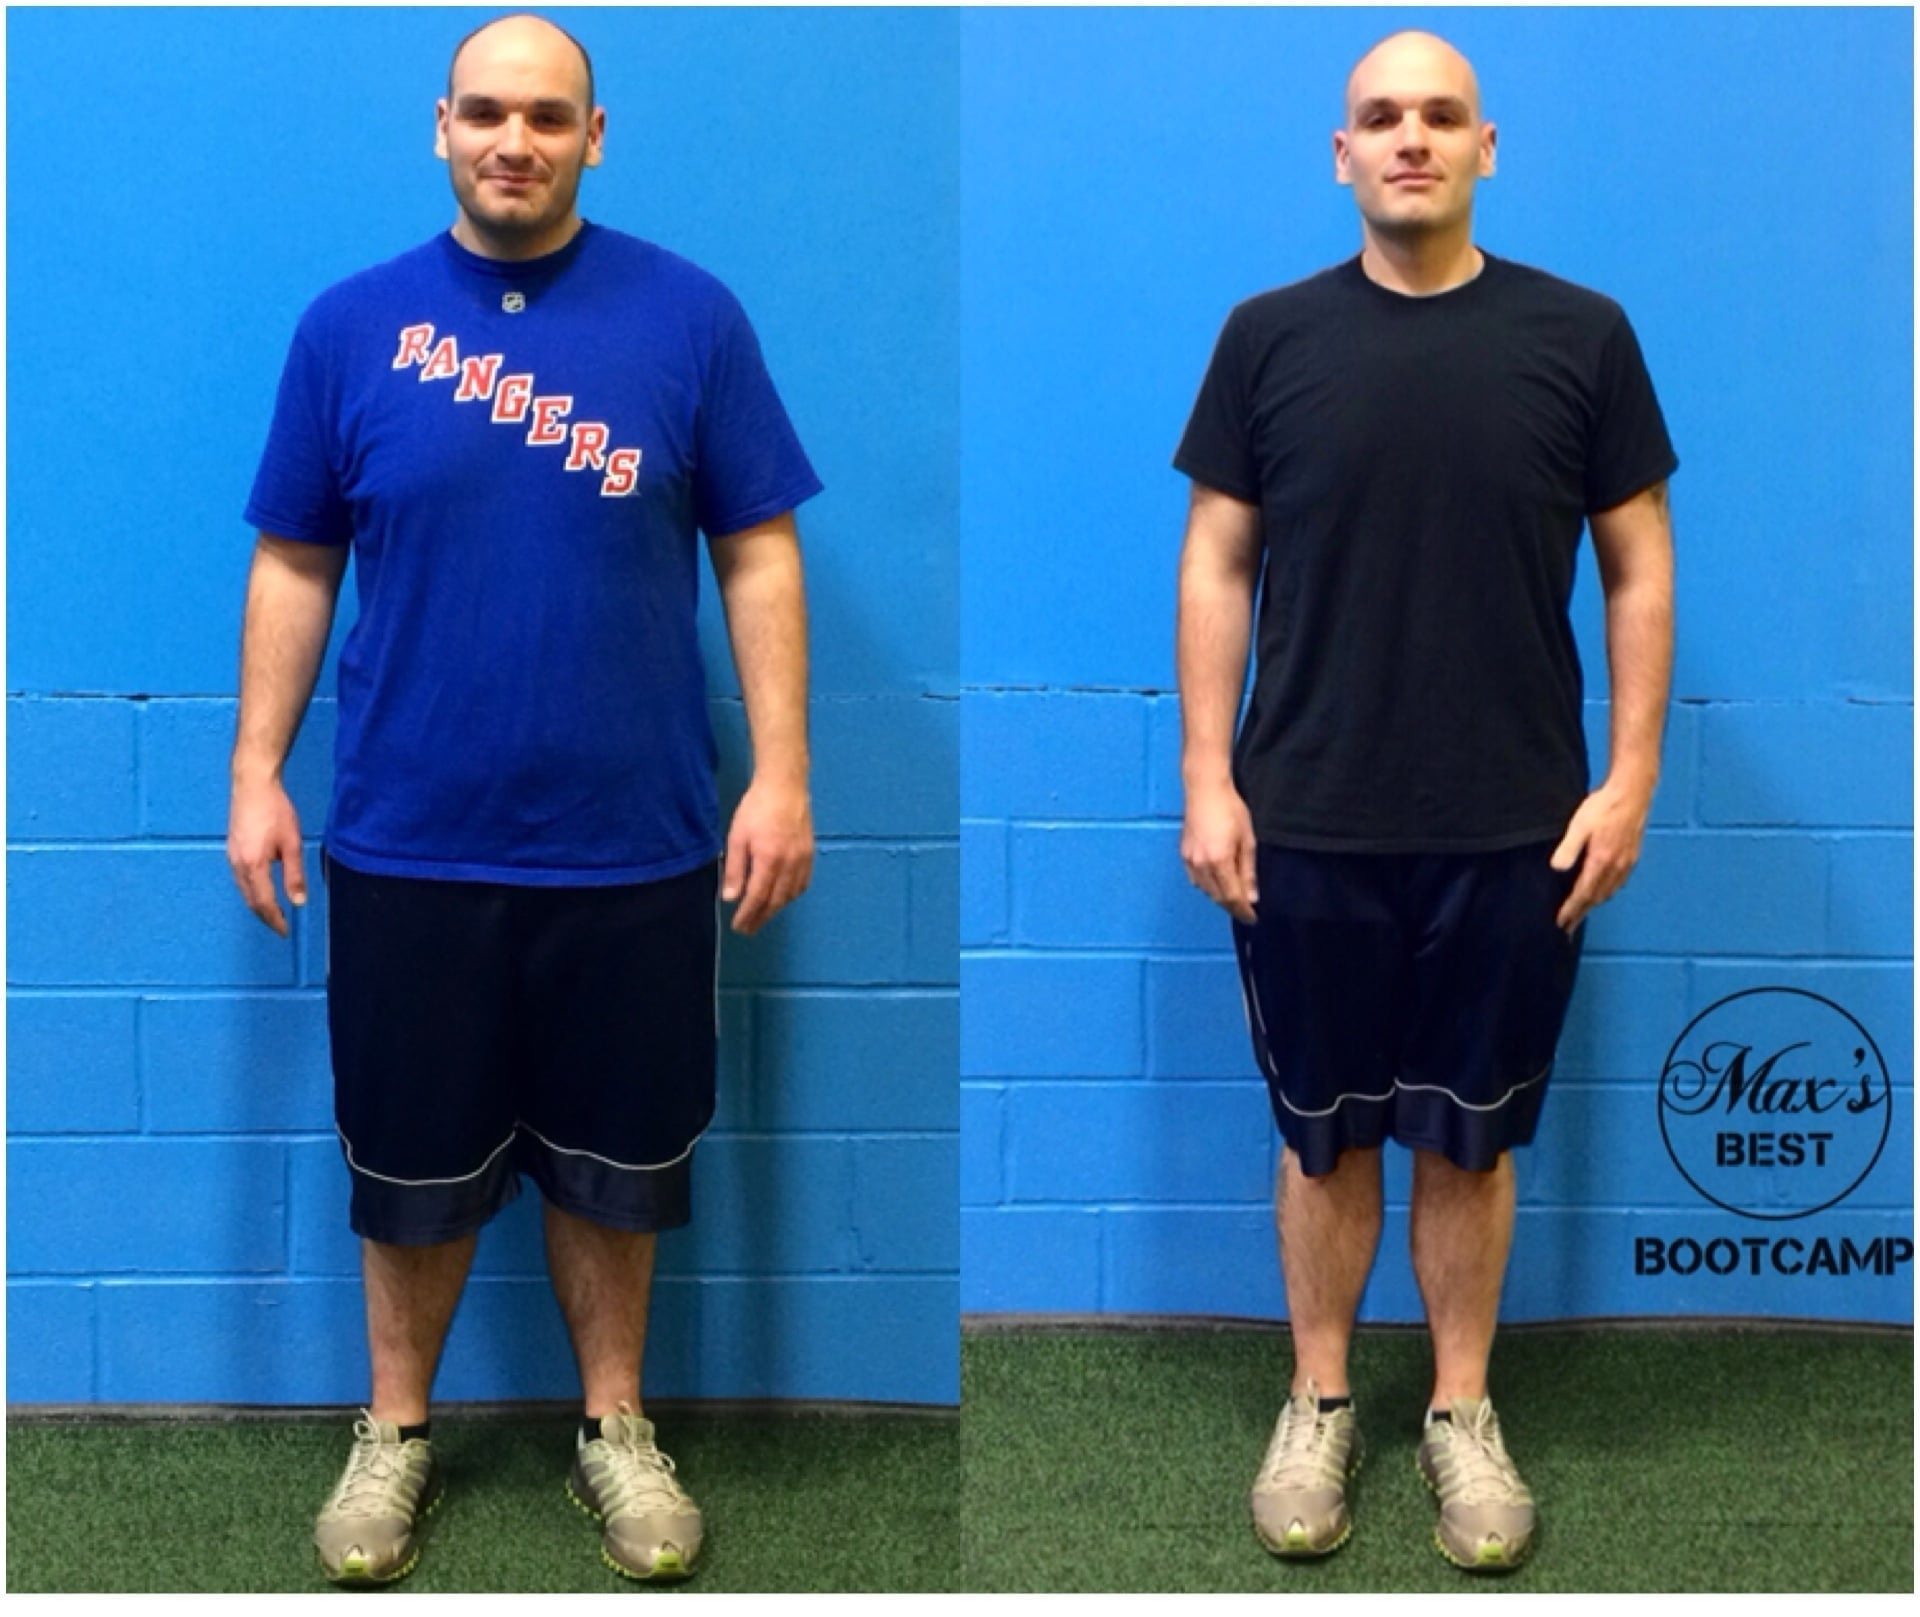 Tim-before-after-bootcamp-danbury.JPG